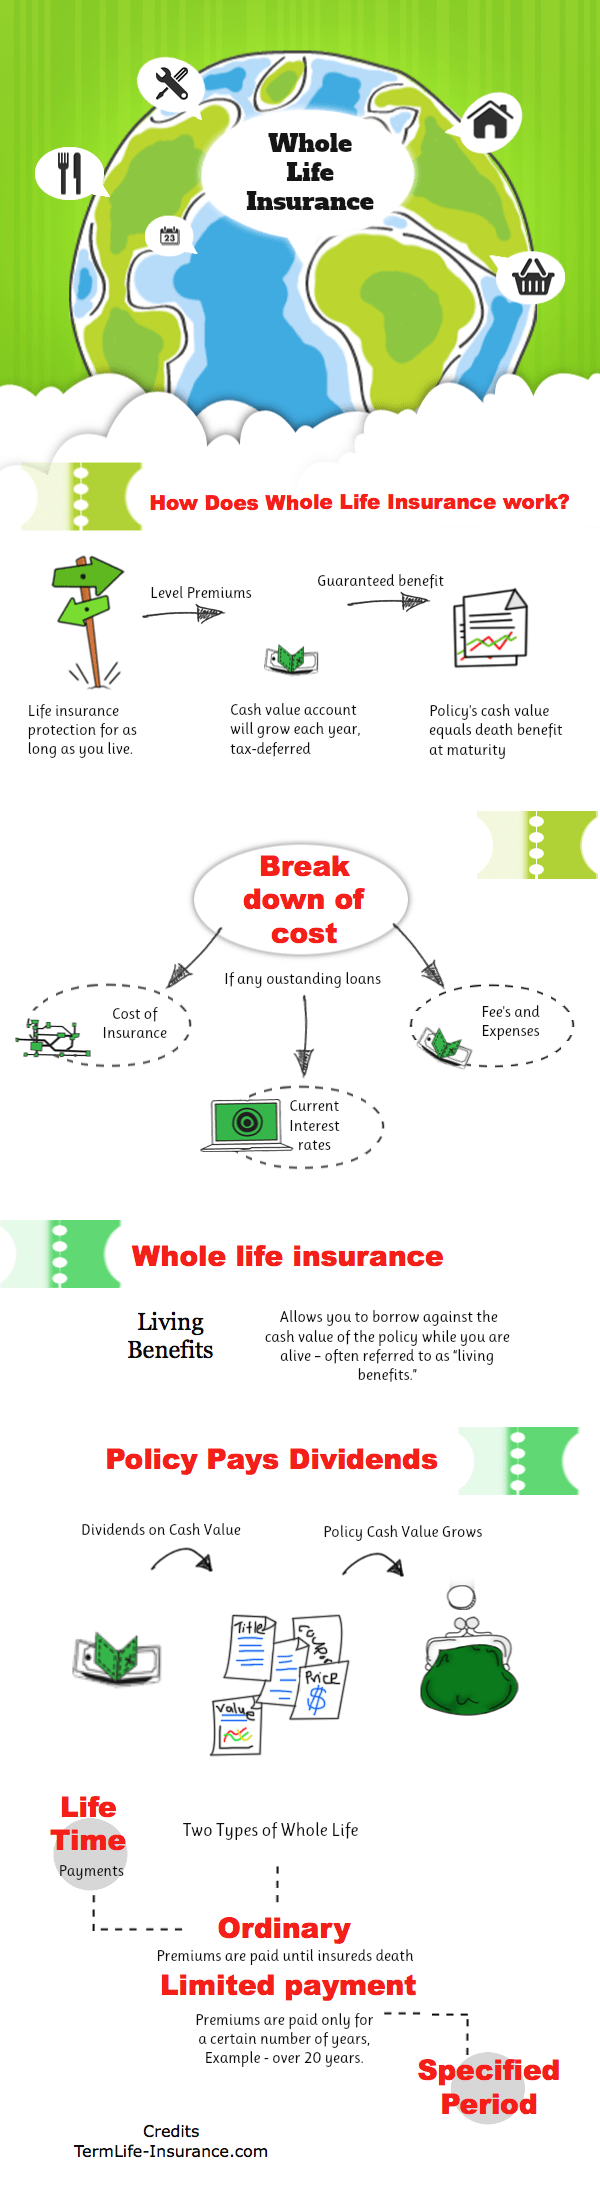 Whole Life Insurance Policy Quotes Instant Whole Life Insurance Quotesup To $100000 In Coverage.